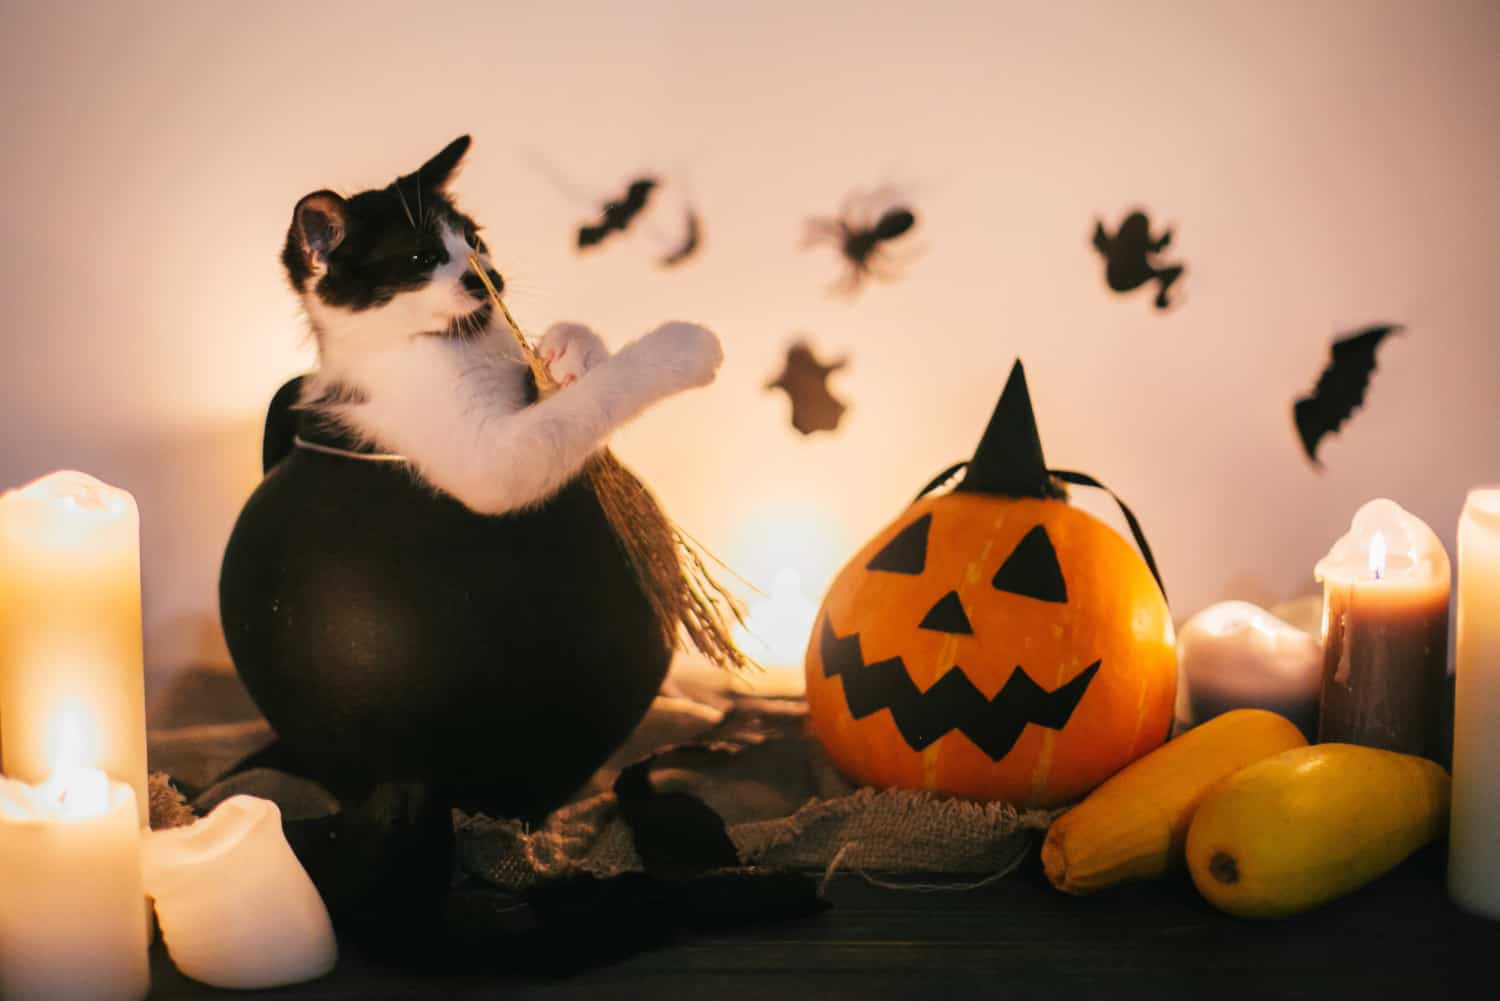 Black kitten sitting in witch cauldron and Jack o lantern pumpkin with candles, broom and bats, ghosts on background in dark spooky room.